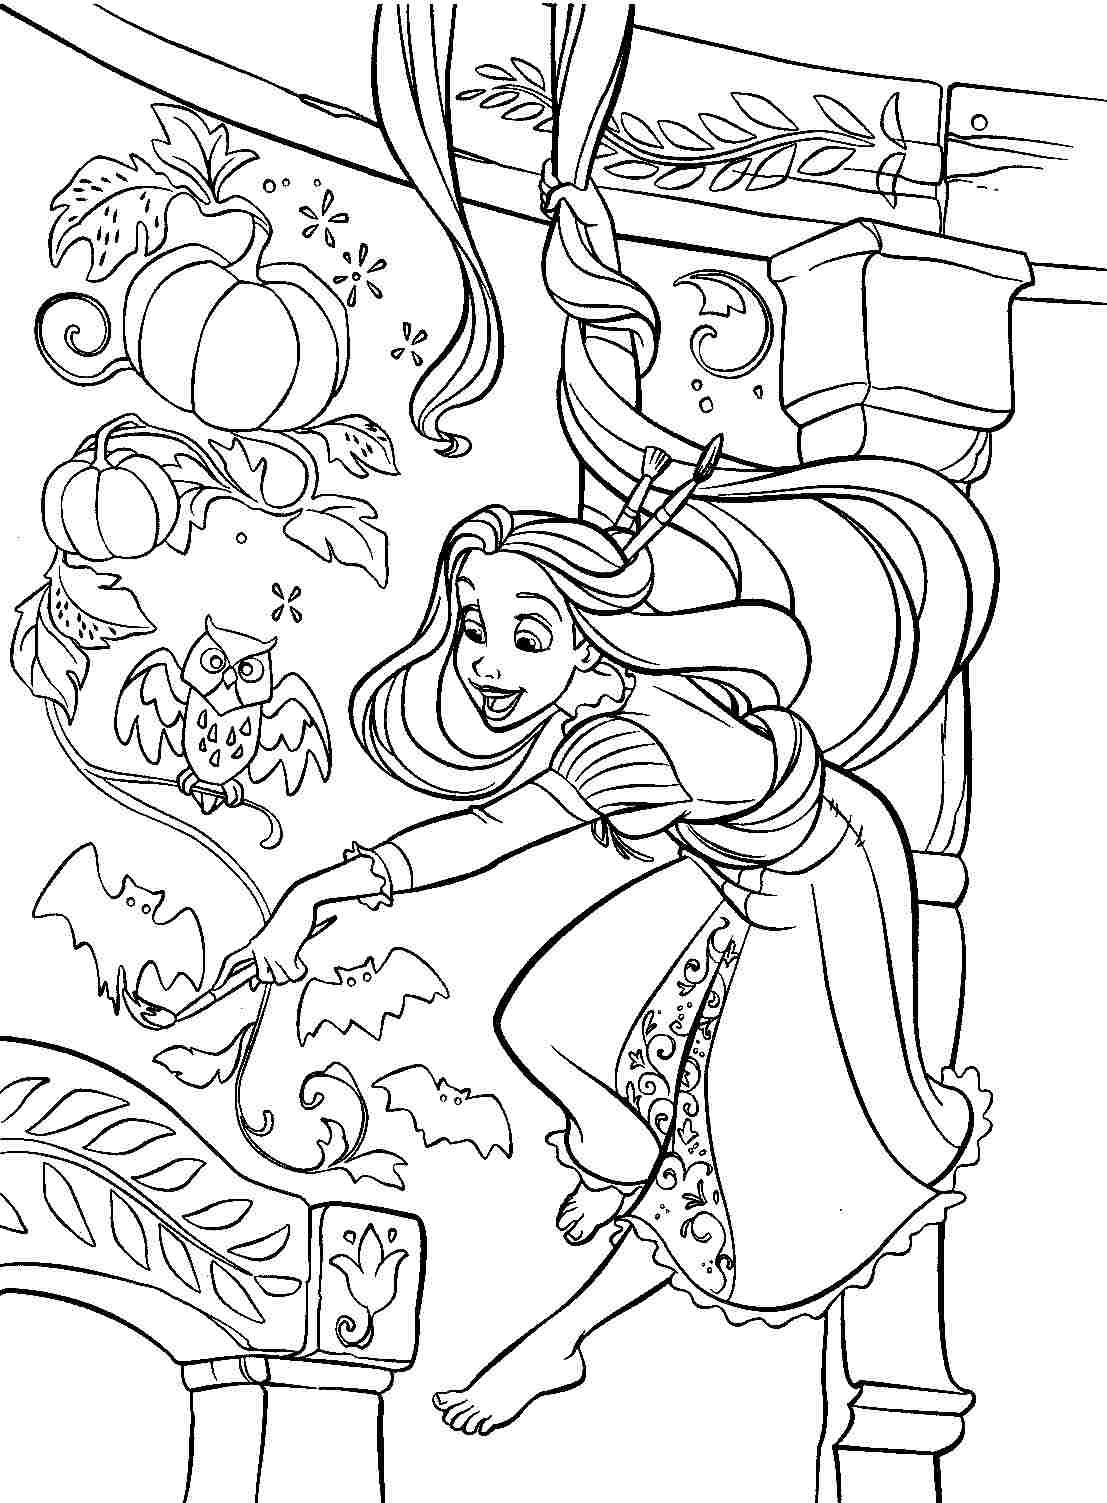 free printable coloring pages disney princess tangled rapunzel for kids girls - Rapunzel Coloring Pages To Print